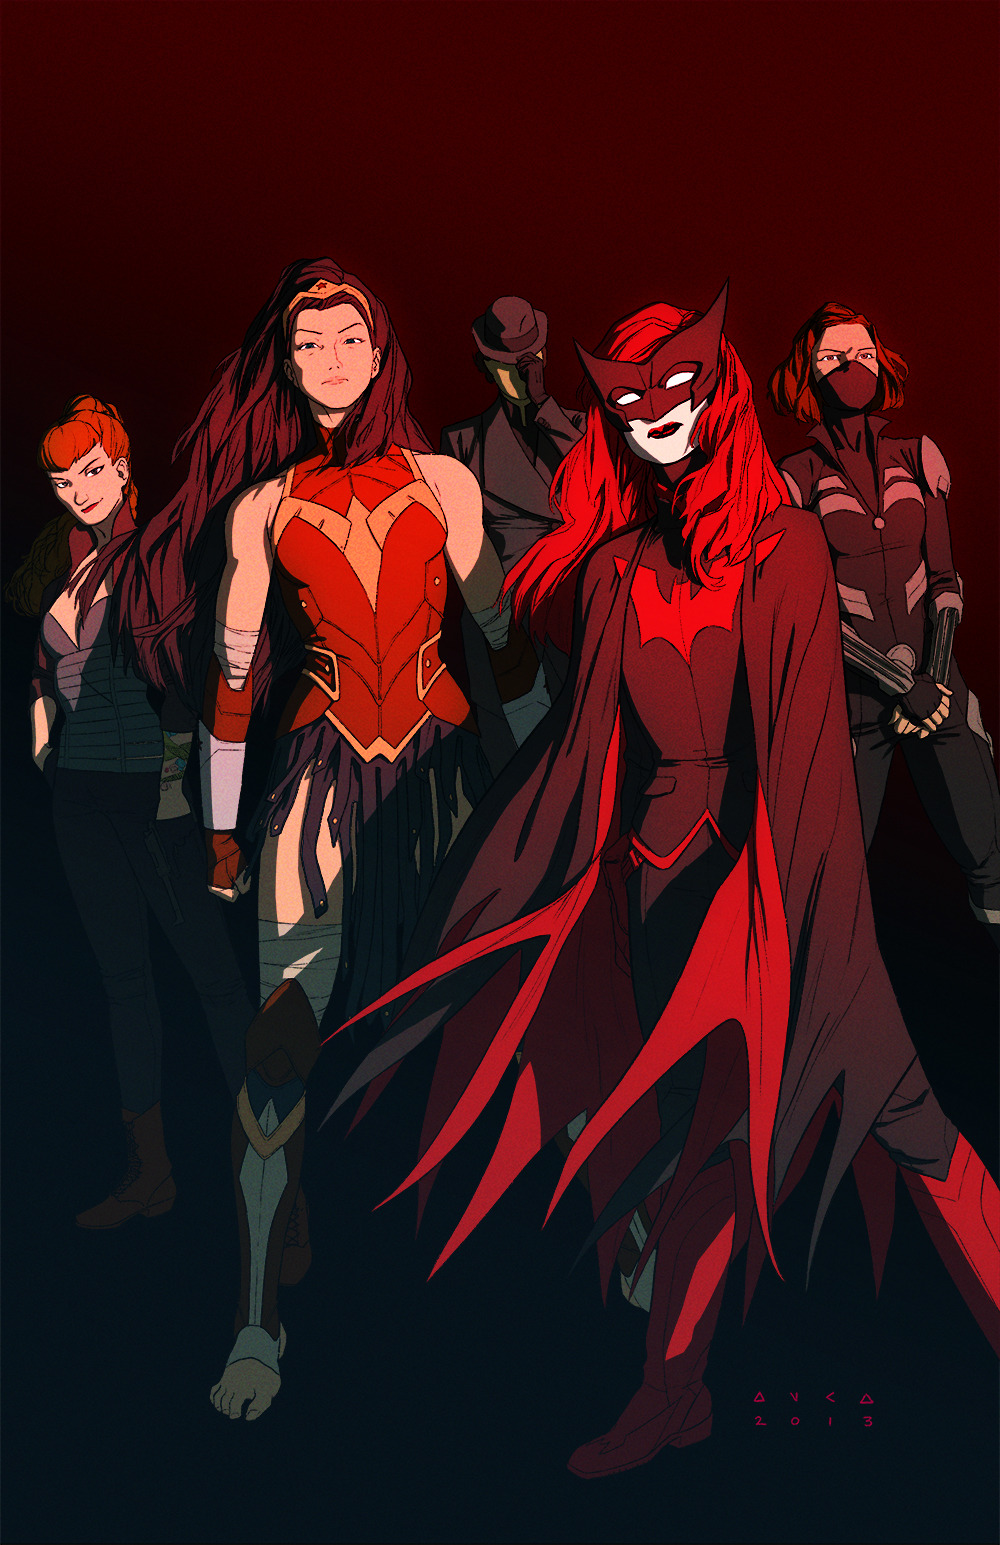 kristaferanka:  The greatest Team in the world. Kate. Diana. Eve. Scandal. and Renee. This started a few weeks ago from an idea I had when talking to a co-worker of mine at Nickelodeon. She and I were remarking how big fans we were of Kate and Diana and that lead to my realization that I would love to do a book with them, plus Eve. From there I added Starling, because I remembered how much I loved her and the Secret Six.  and Renee, cause when Greg Rucka says a team needs Renee, you better add Renee. Each costume was redesigned a bit too. I made Kate a bit more formal. Heavily influenced by Yasmin Liang's design. Diana is more or less just a tweak of my older design. I definitely wanted  to keep the Greco Roman Grappler aspect of her. More Wrestler than like a knight. I also wanted to give her a short hair cut, but she ended up  looking better with an epic mane of hair. Eve more or less is the same. I gave her a cage corset, just cause i like cage dresses. Made her slightly more fashionable. Scandal I just wanted her too look more Ninja. nothing too large of a change. just some taste stuff. and Renee, also didn't have  too much of a change, just gave her a bit more of a designed coat, rather than just a regular suit.